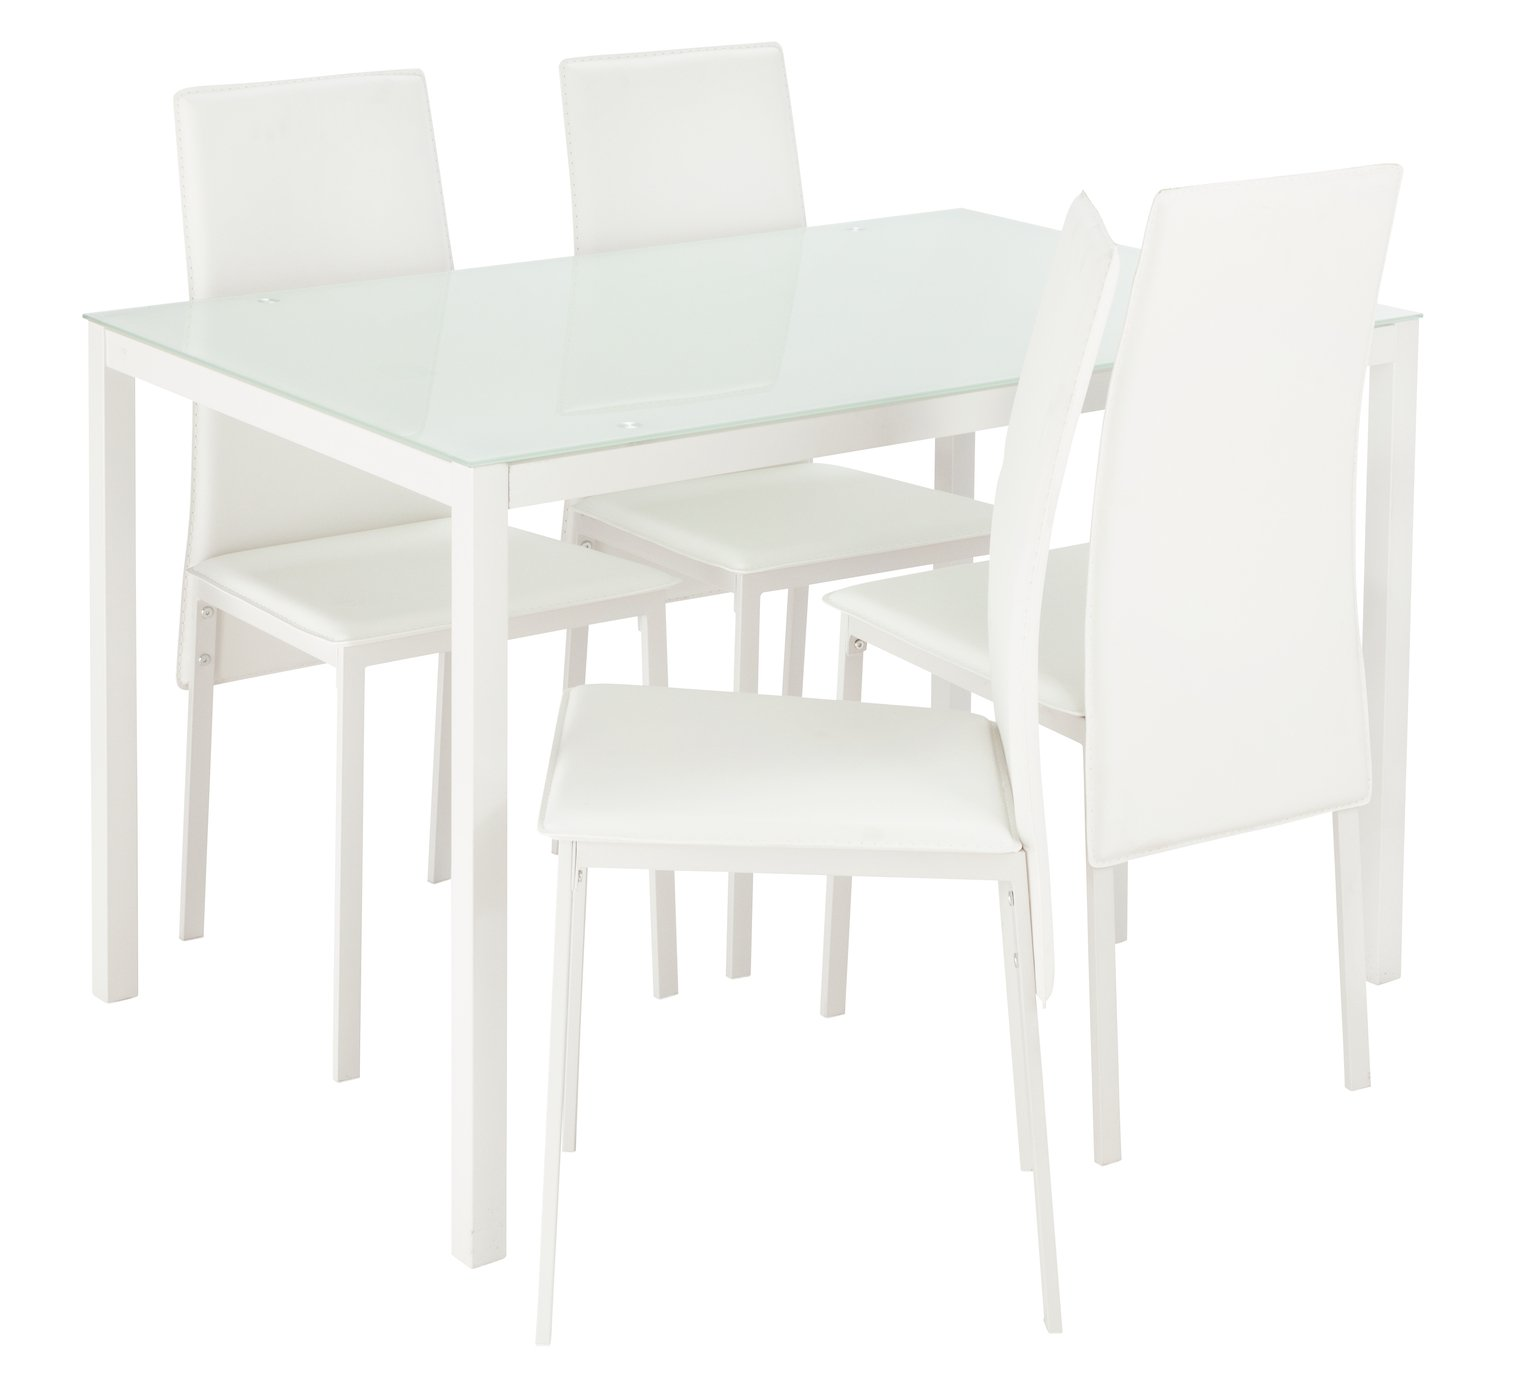 Buy Argos Home Lido Glass Dining Table U0026 4 Chairs   White | Dining Table  And Chair Sets | Argos